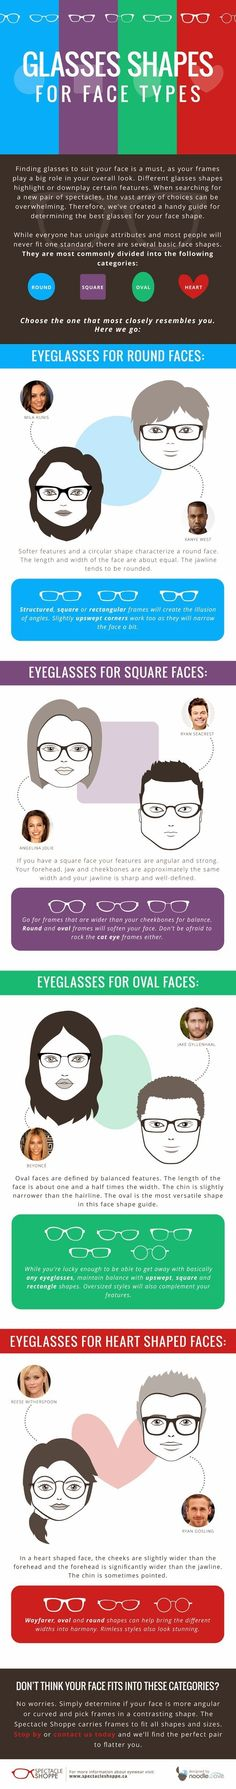 Everyone's face has a slightly different shape, but in general face shapes fall into four main categories. Depending on your face shape, certain glasses shapes will look better than others. We've come up with this handy infographic to help you decide Glasses Trends, Glasses For Your Face Shape, Image Blog, Cool Curtains, Buy Sunglasses, Glasses Frames, Face Shapes, Face And Body, Eyeglasses